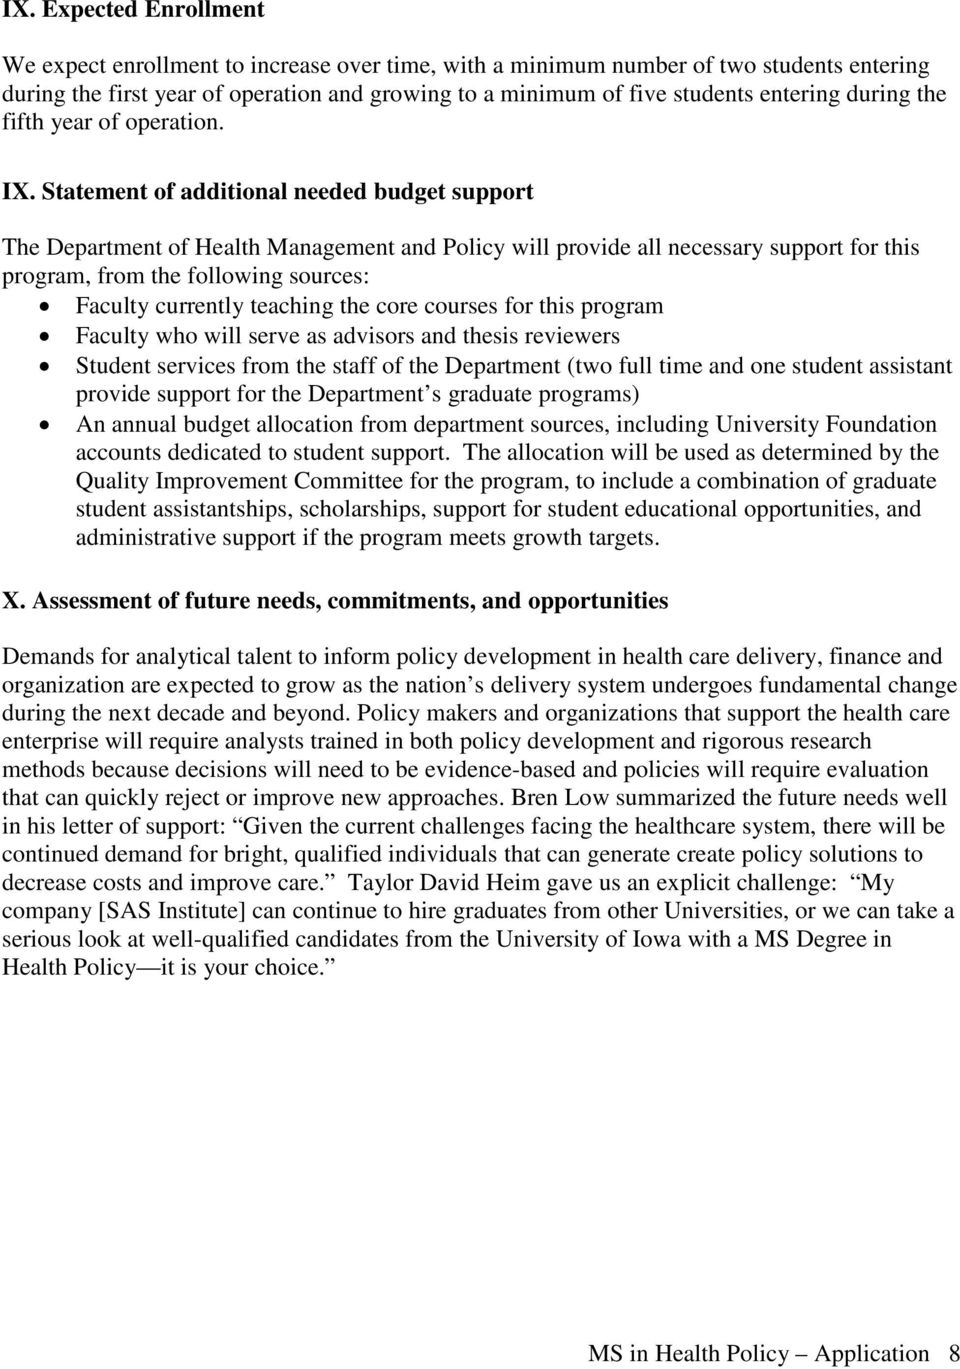 Statement of additional needed budget support The Department of Health Management and Policy will provide all necessary support for this program, from the following sources: Faculty currently